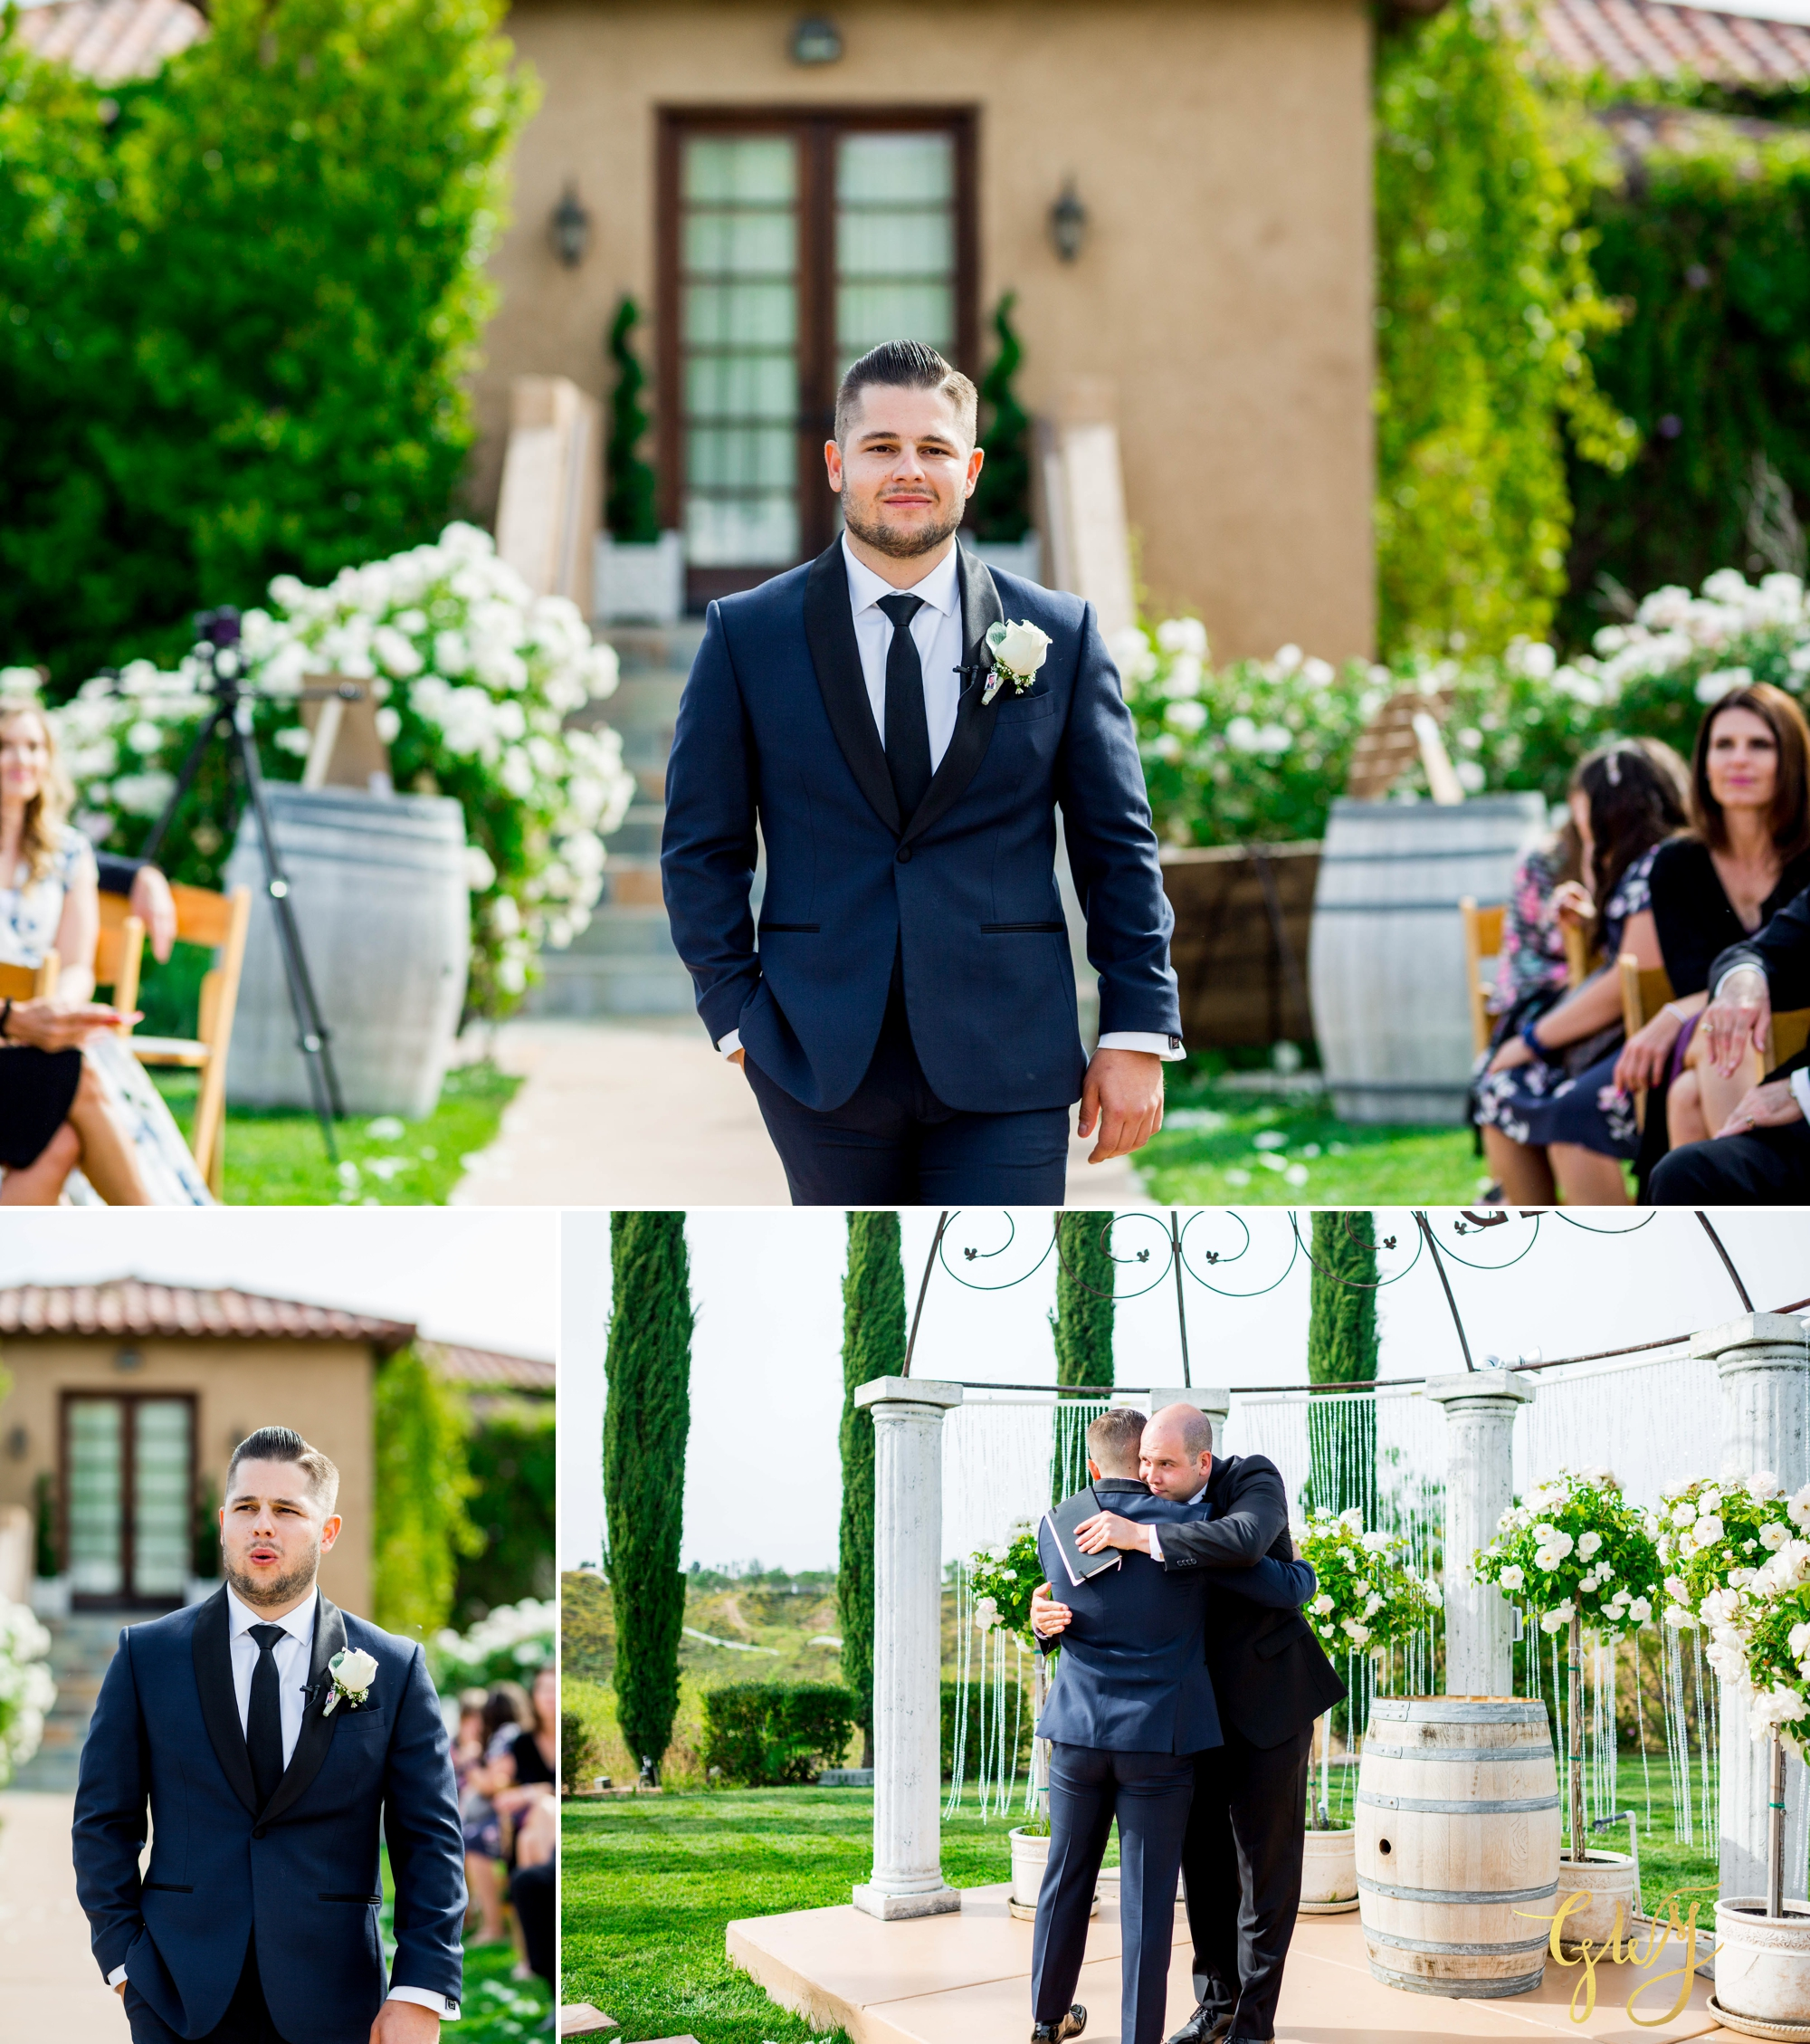 Kristen + Krsto's Romantic Temecula Winery Spring Wedding by Glass Woods Media 25.jpg